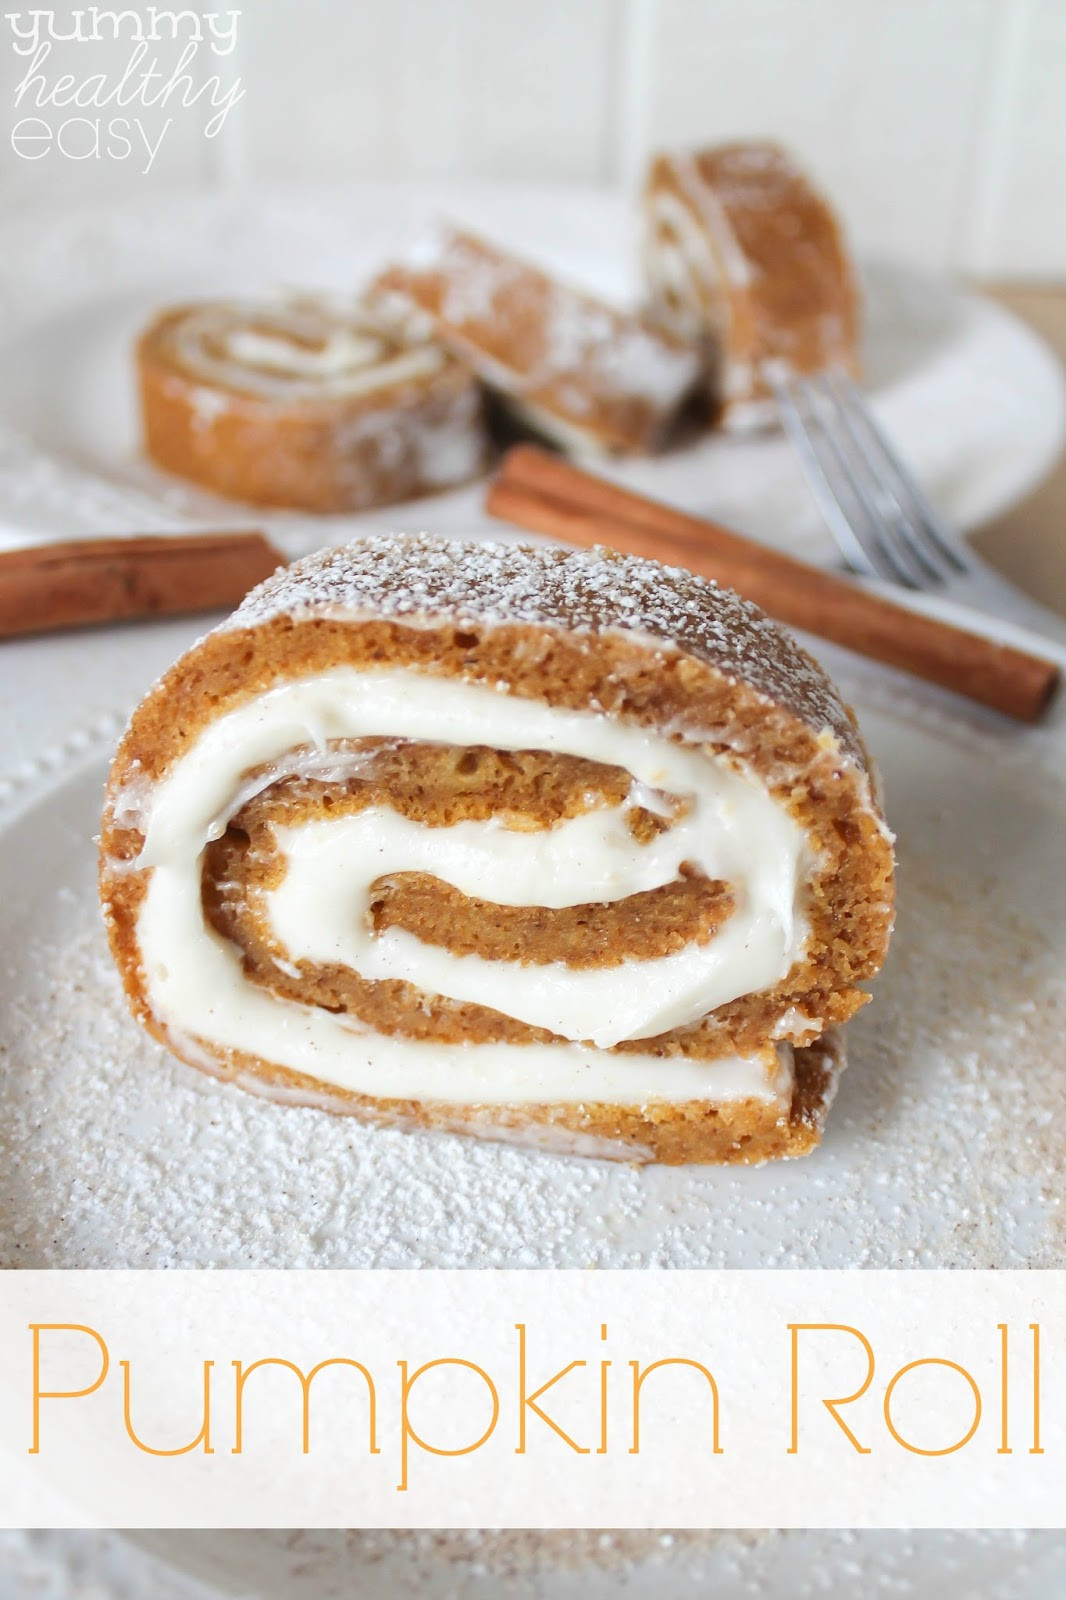 Good Fall Desserts  Easy Pumpkin Roll Dessert Yummy Healthy Easy